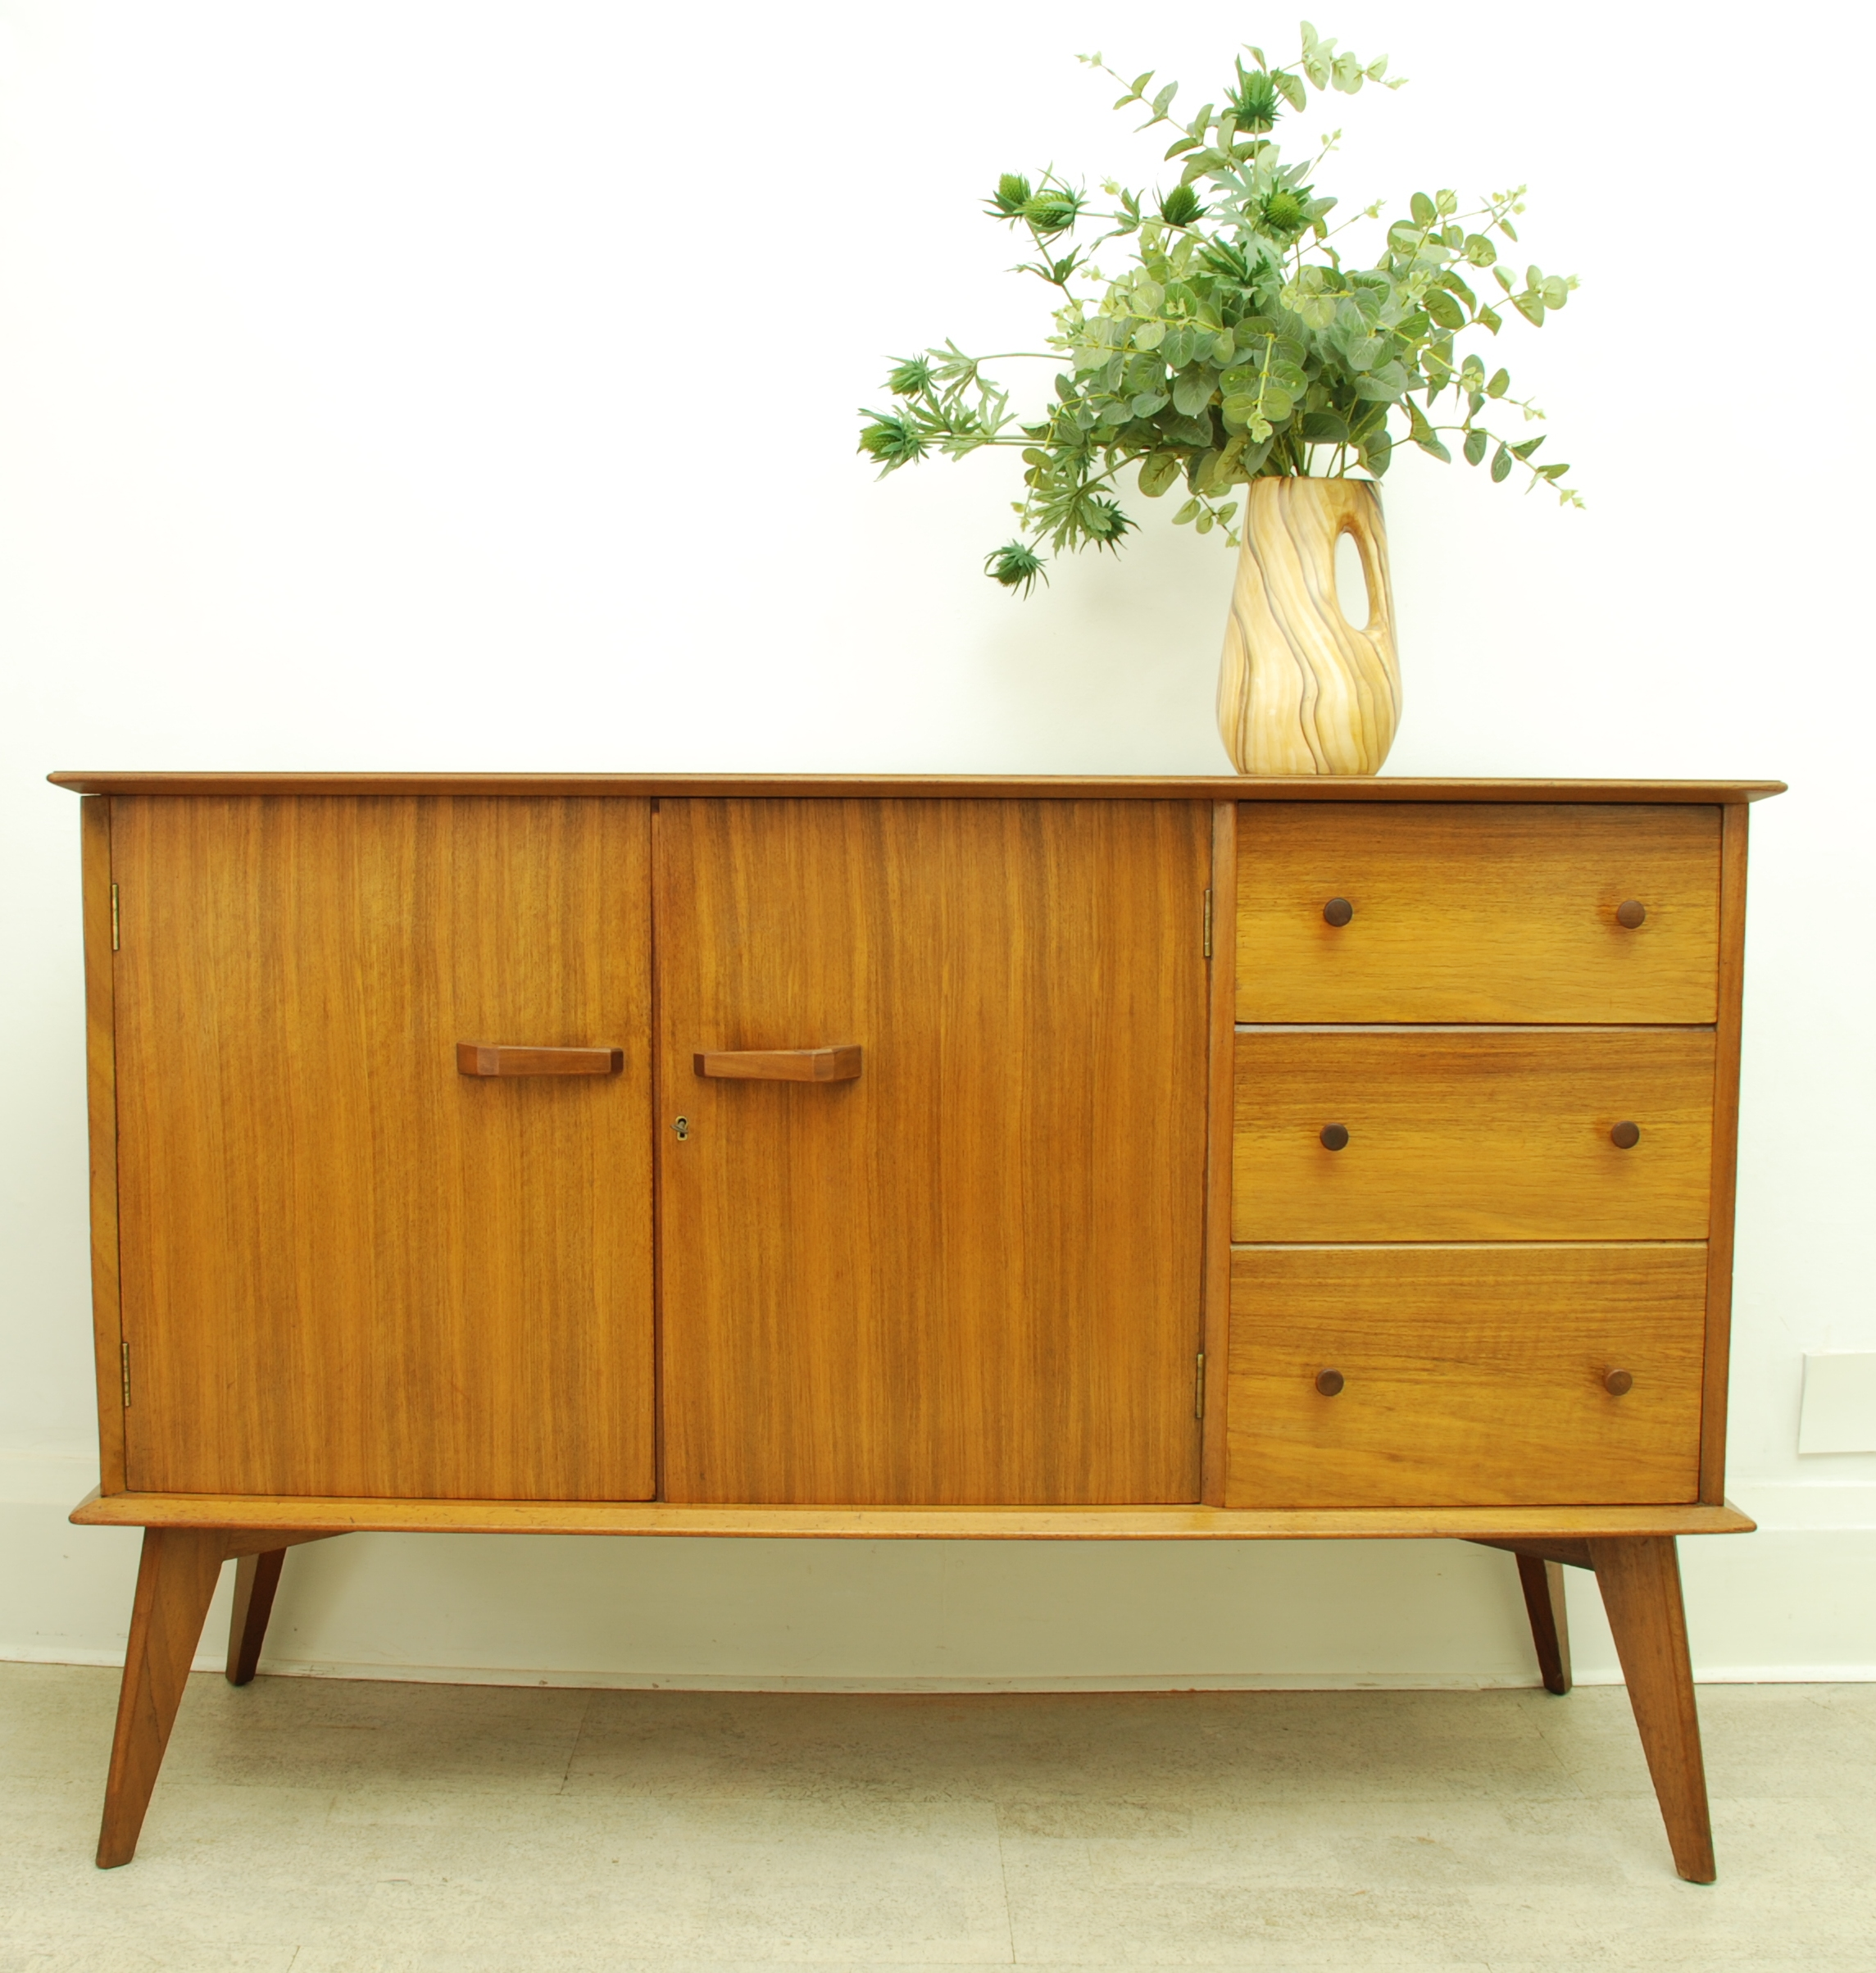 sideboard 3 drawers 2 doors (2)